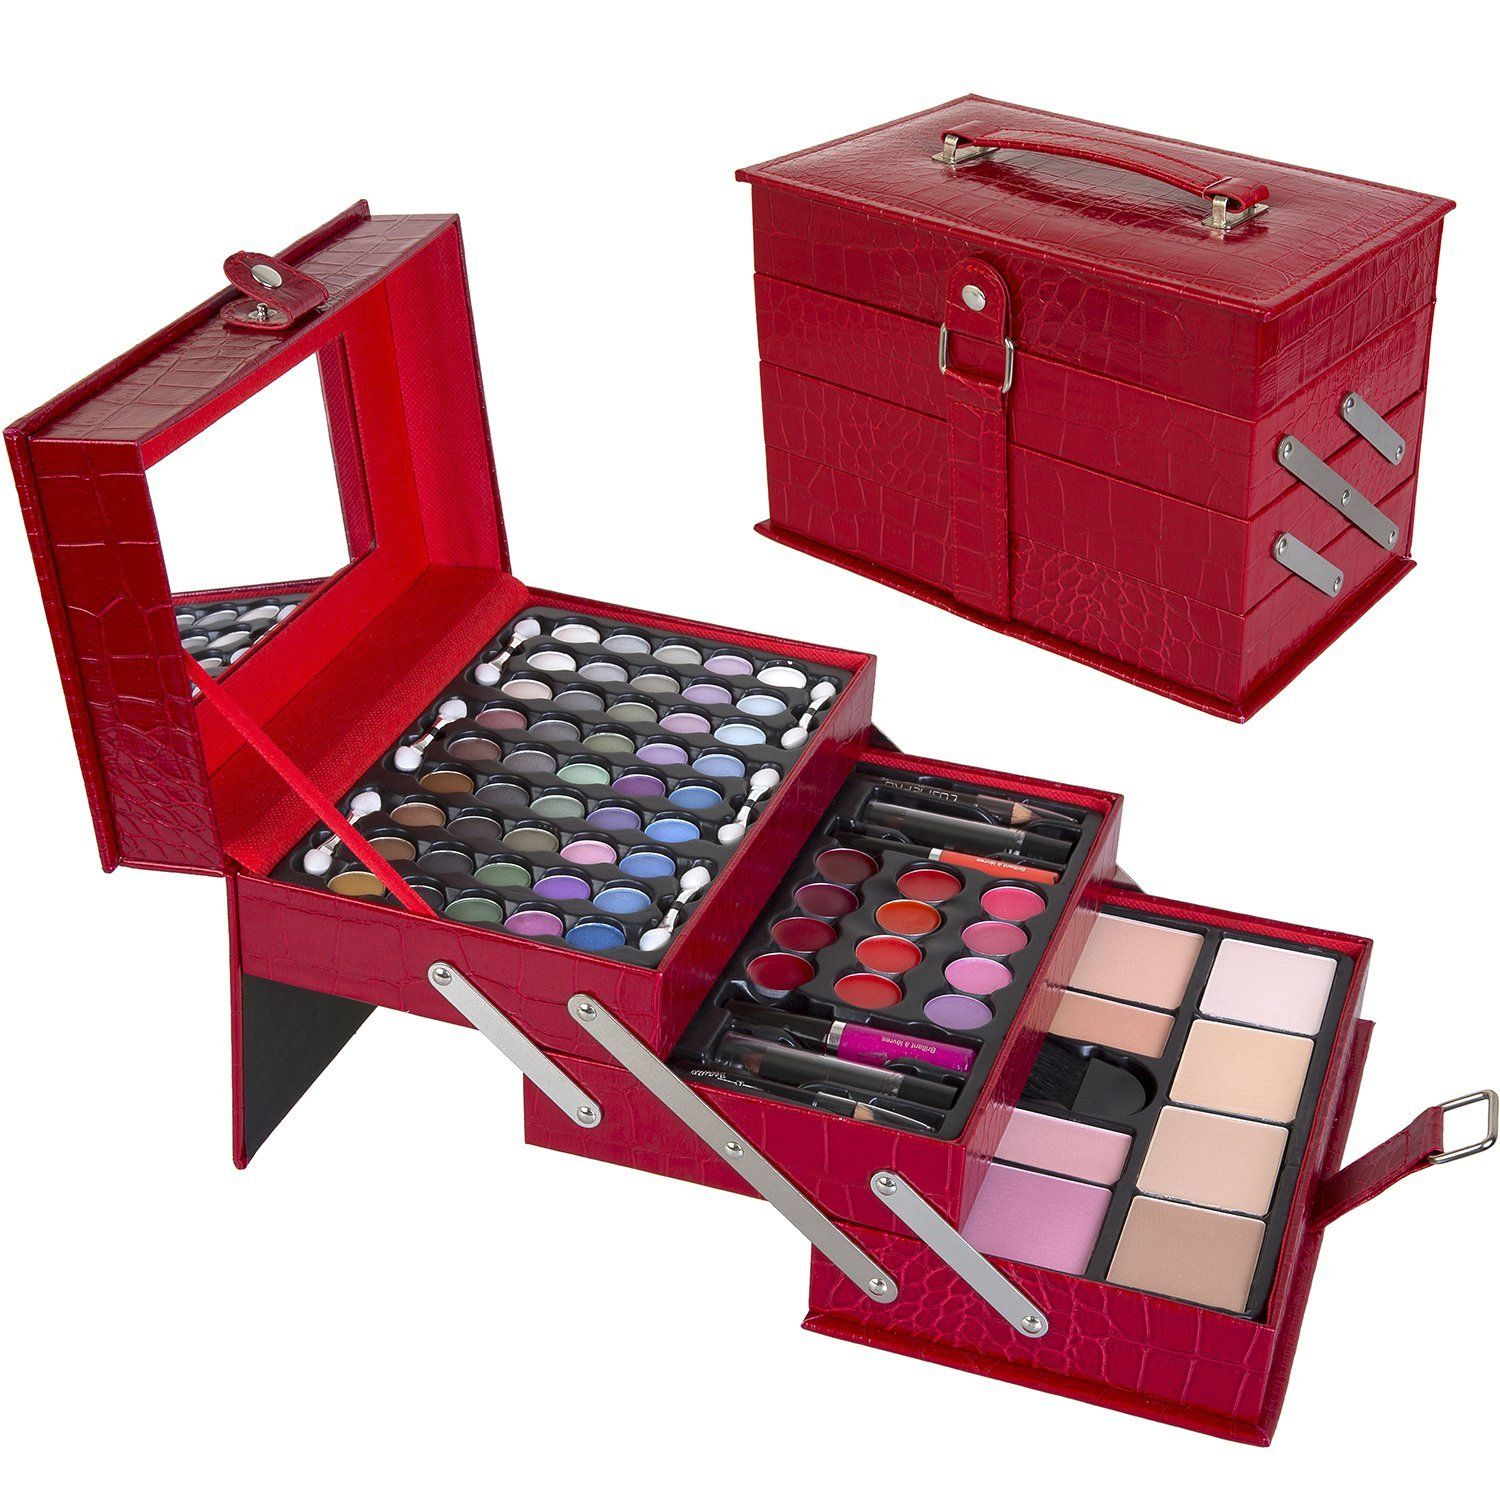 makeup kit with eyeshadows, powders, and brushes. makeup